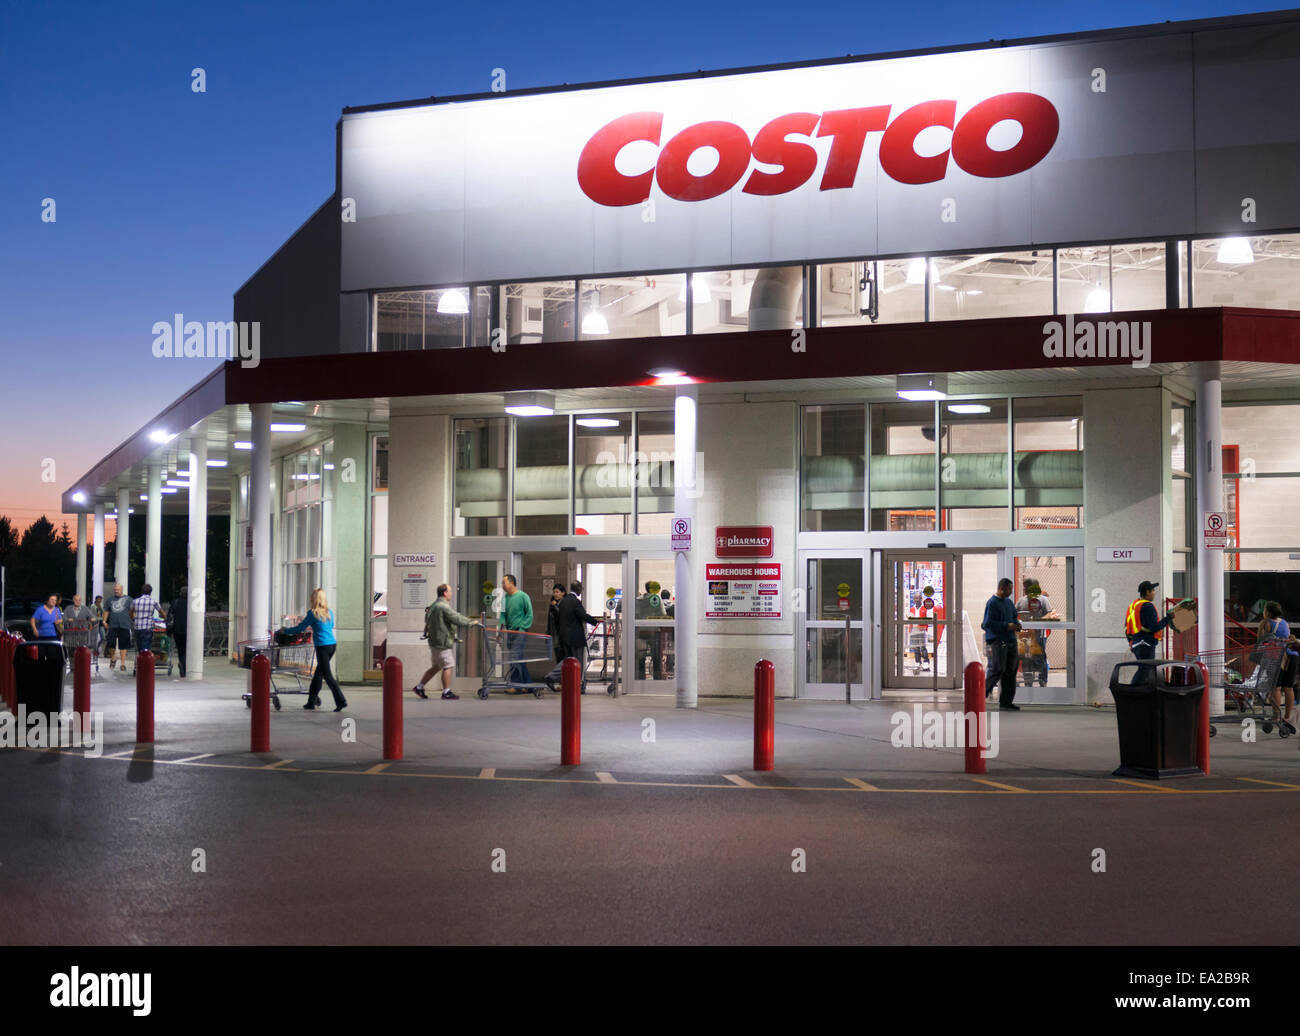 Costco store membership warehouse club chain in the evening in costco store membership warehouse club chain in the evening in scarborough toronto ontario canada 2014 thecheapjerseys Images